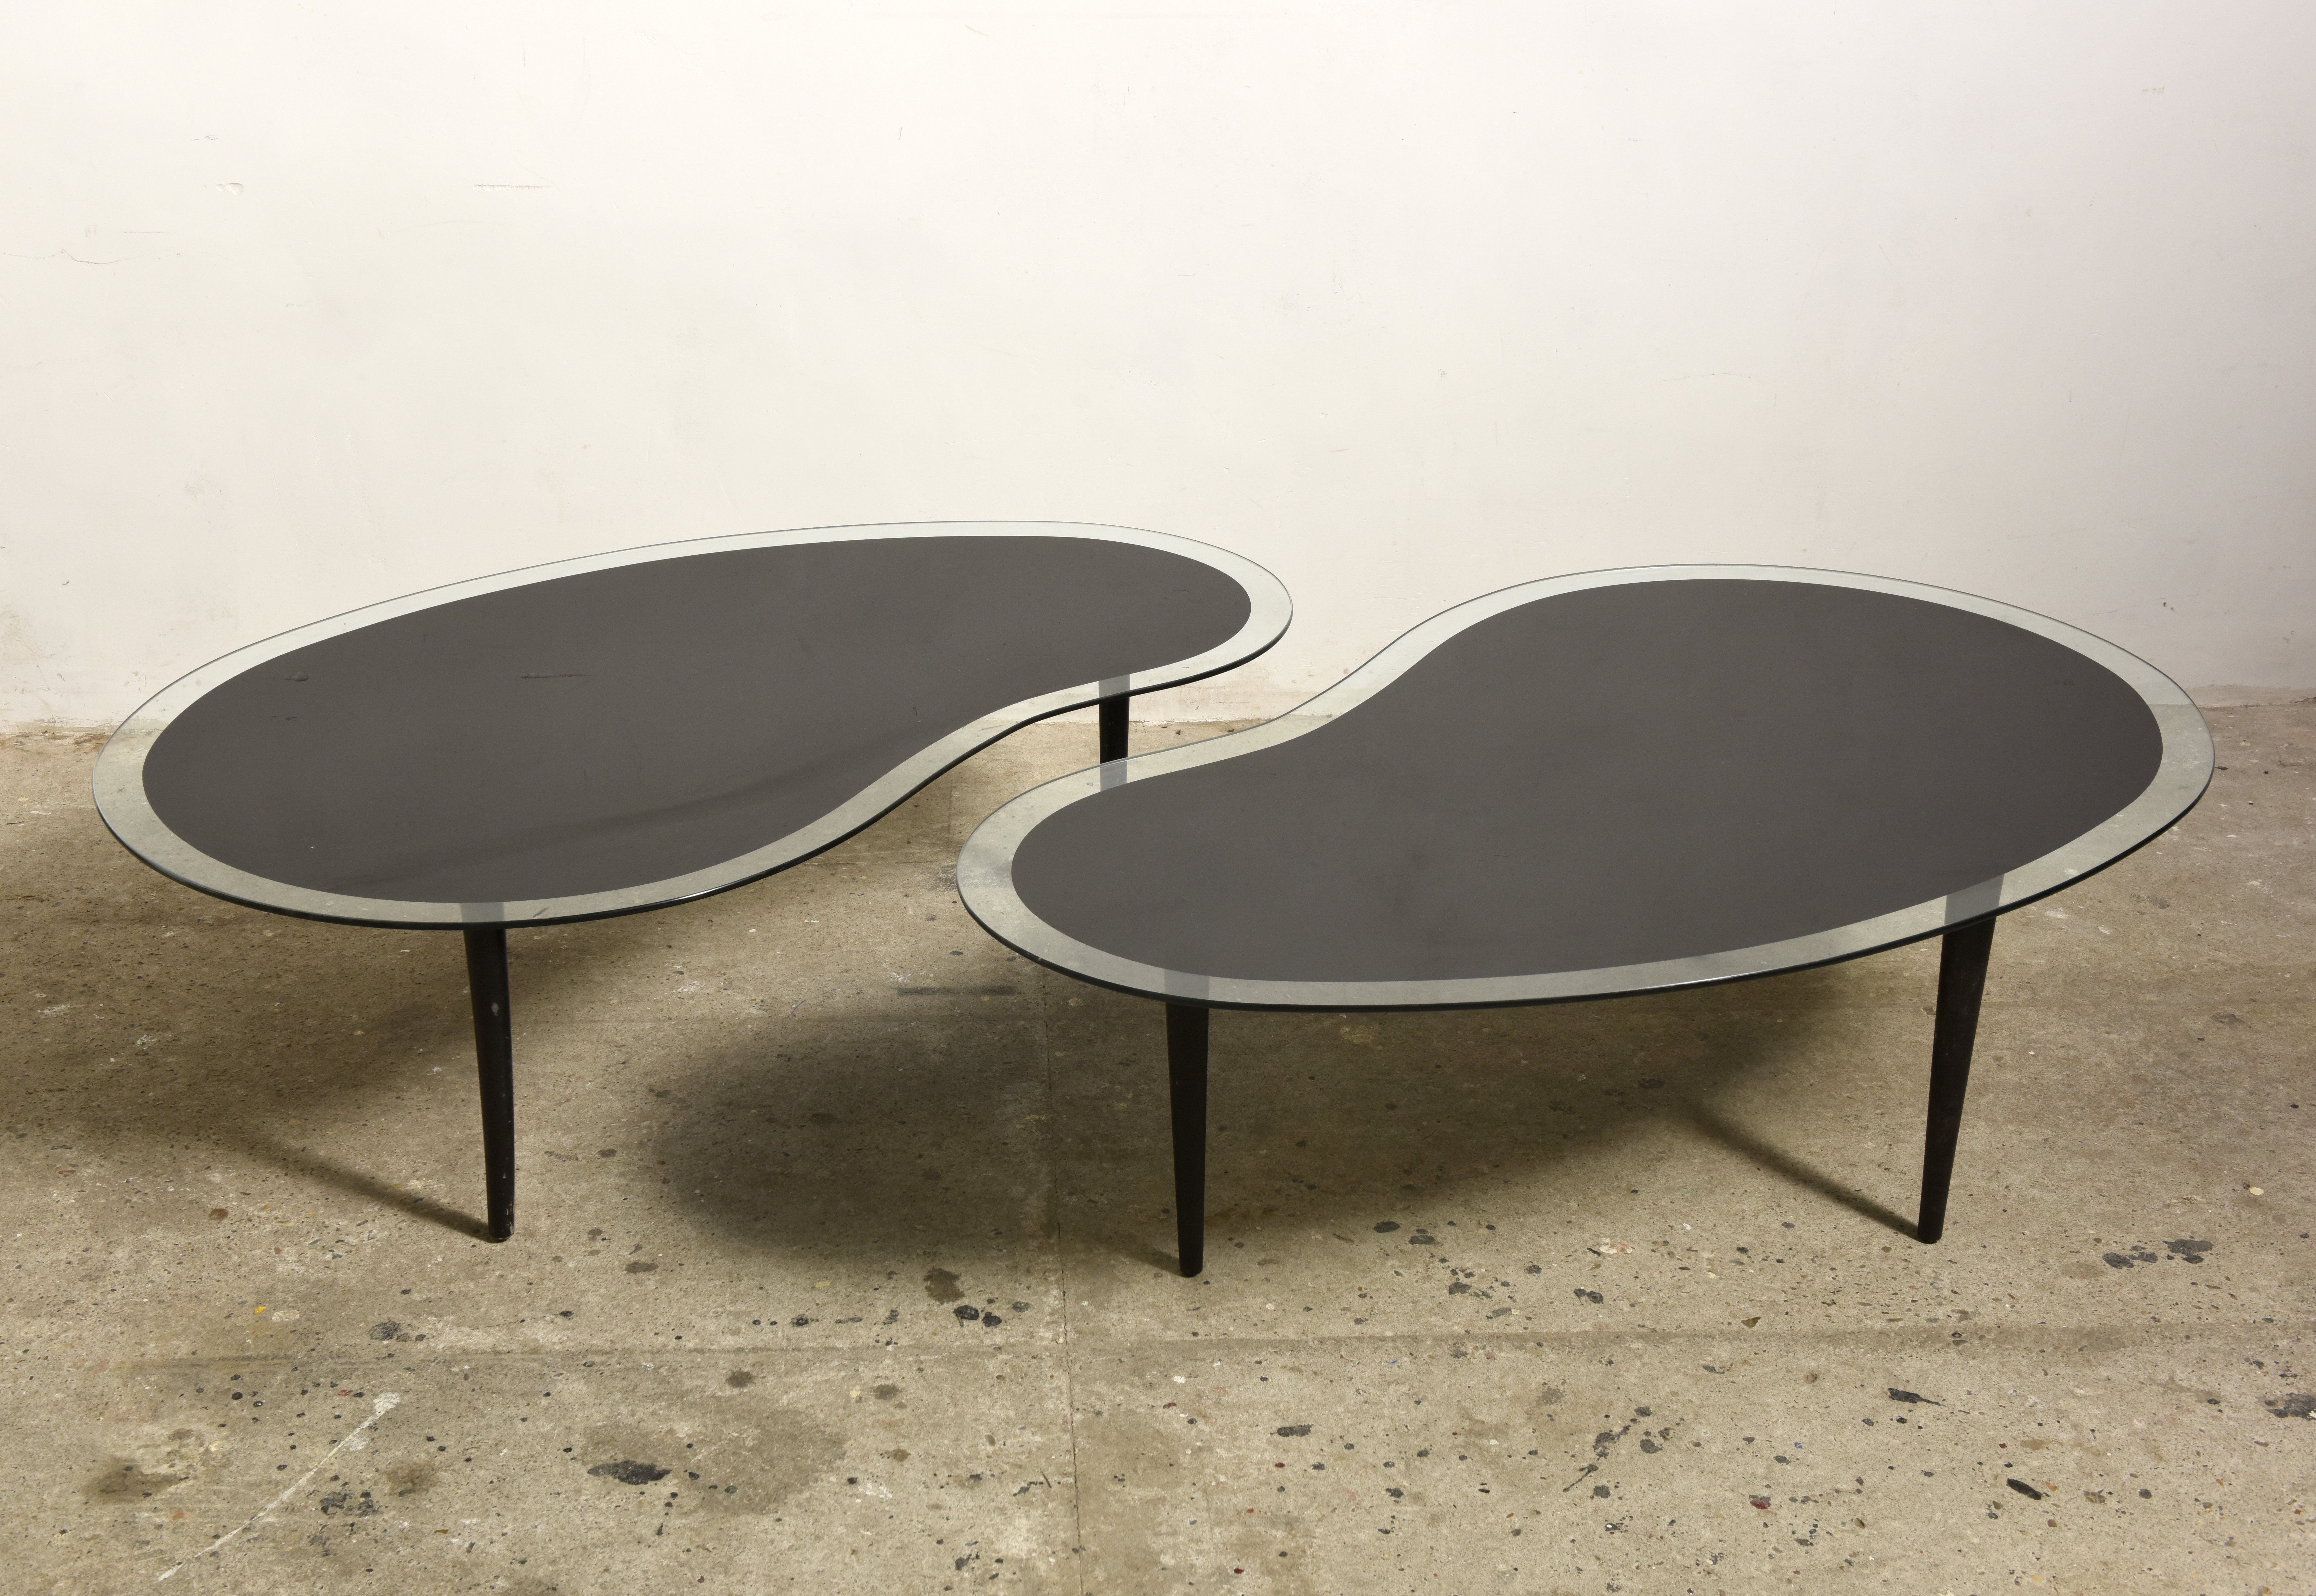 Kidney Boomerang Coffee Tables with Glass Top 1960s